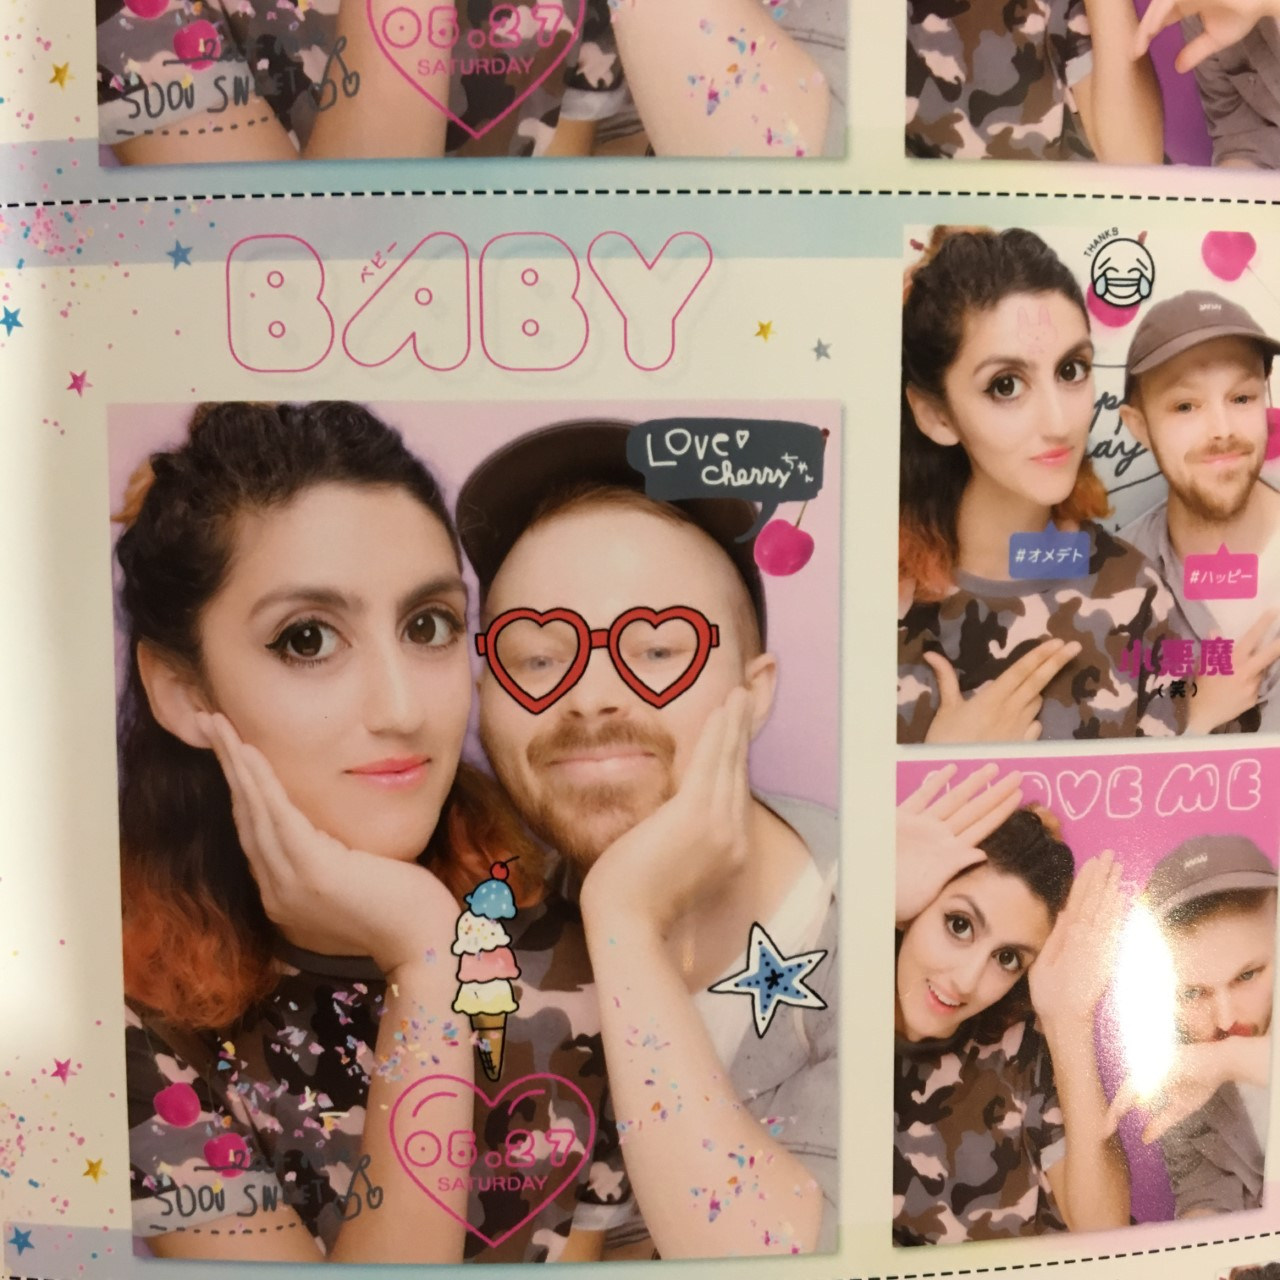 Had a go at the purikura machines in Tokyo, Japan, which are photo booths where you can make photo stickers with your own doodles .